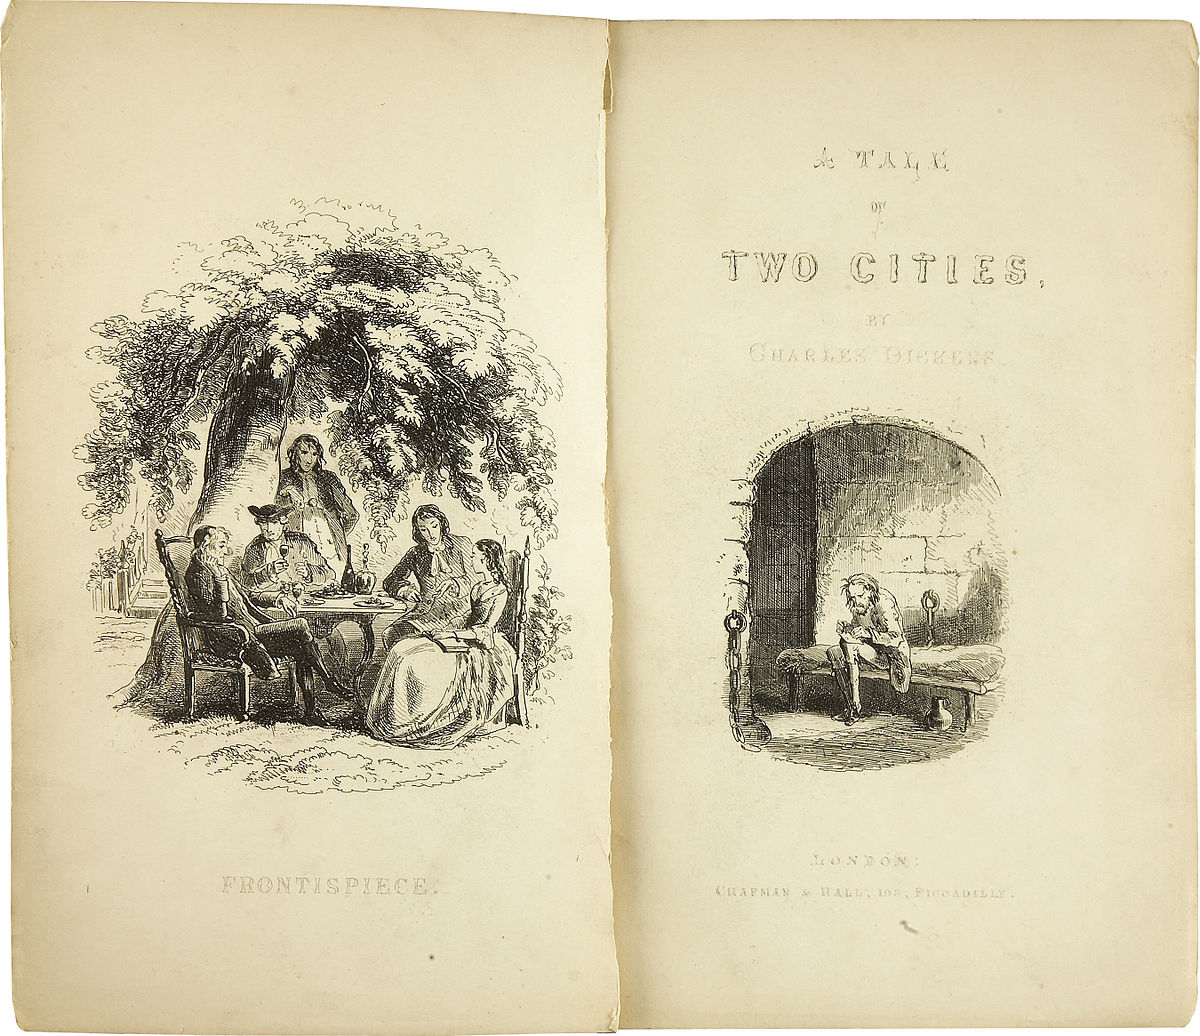 city essay tale two  a tale of two cities essays